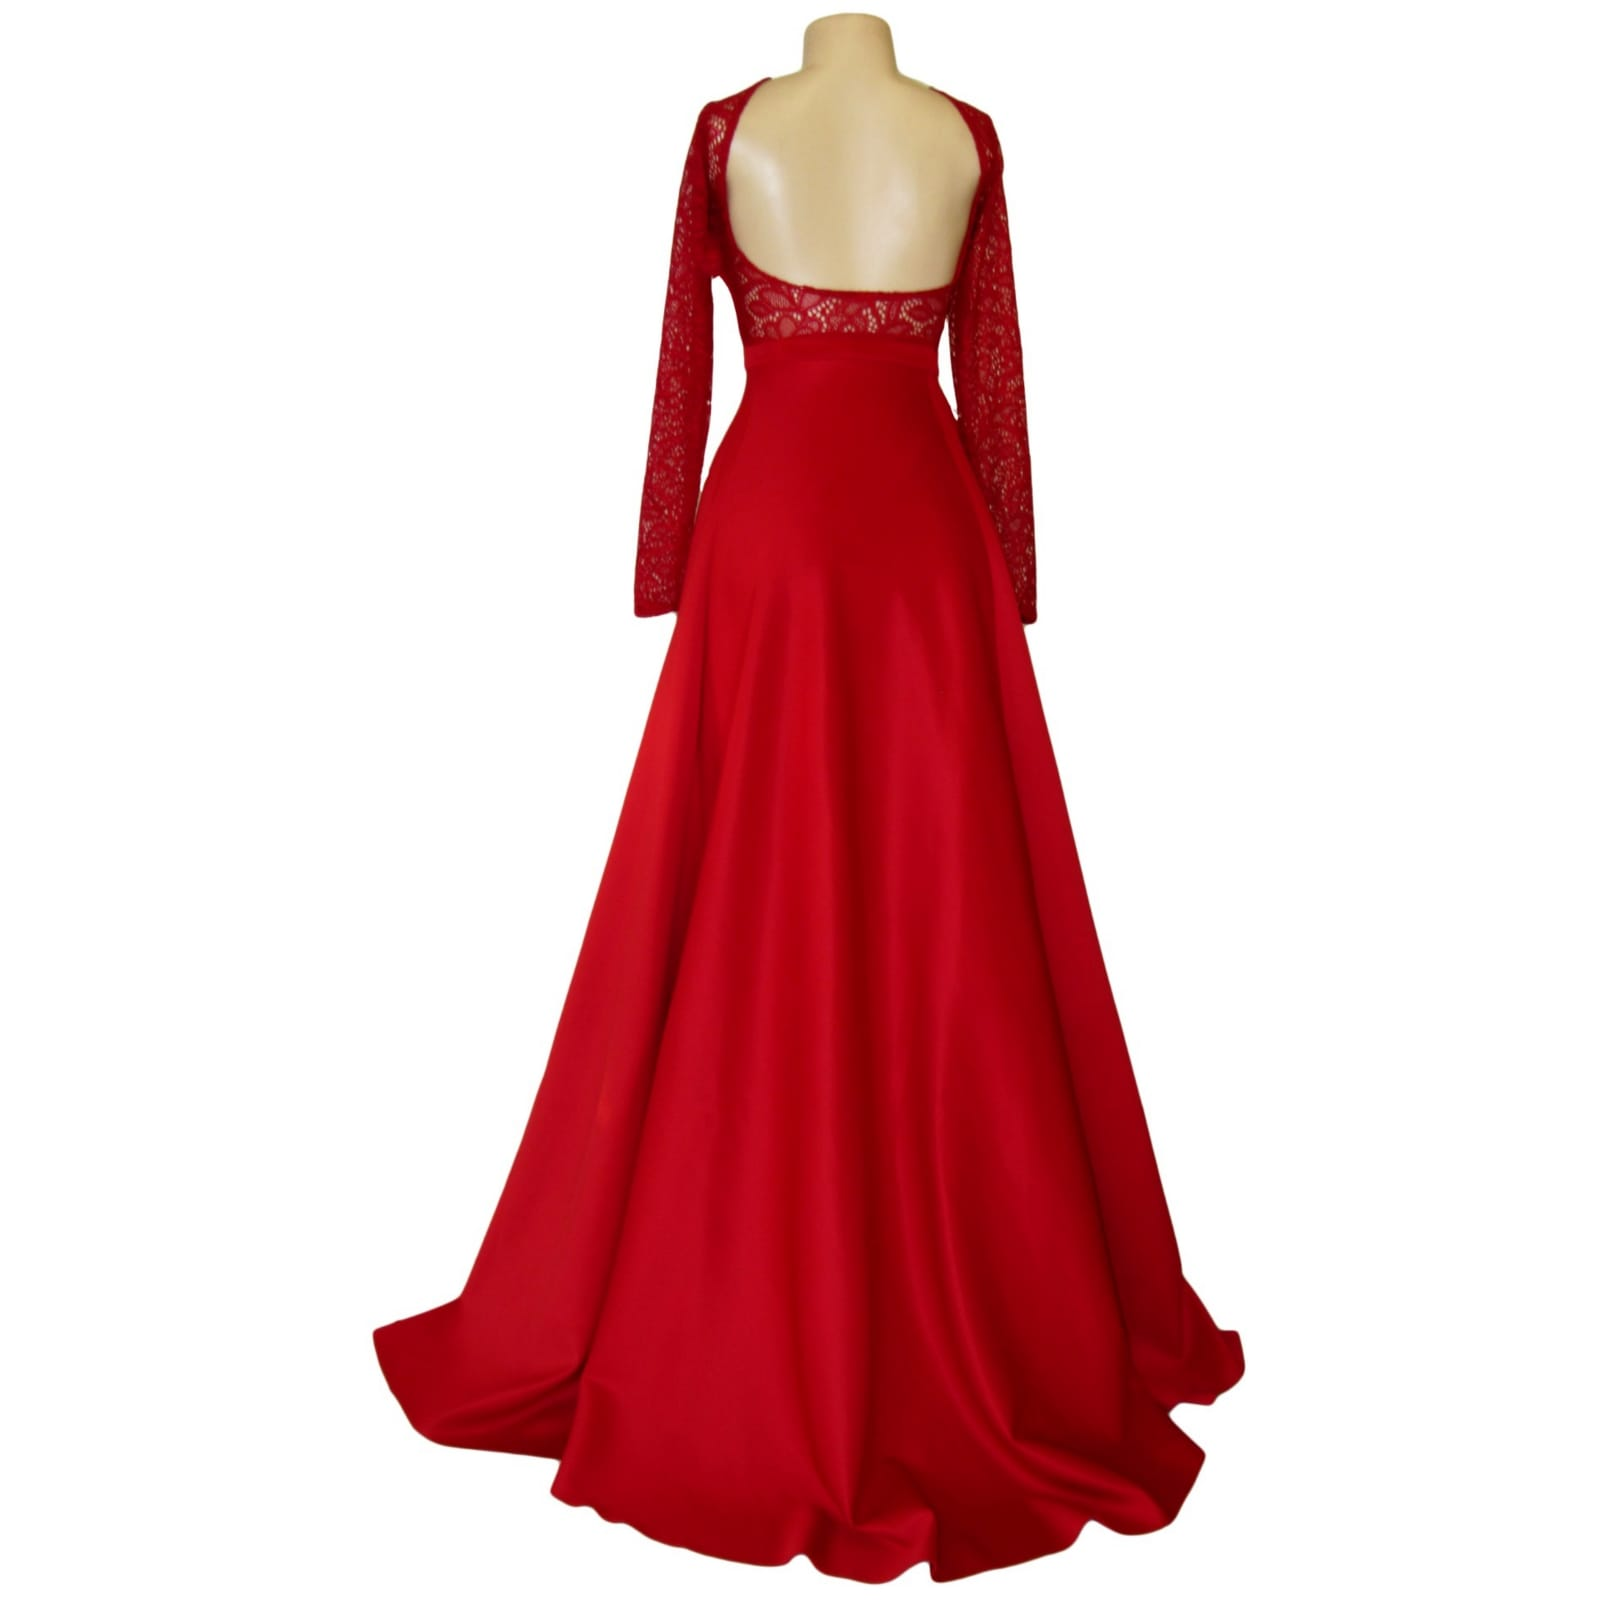 Straight cut deep red open back gala dress 2 straight cut deep red open back gala dress. With a lace bodice, long lace sleeves and a slit. With a detachable train.